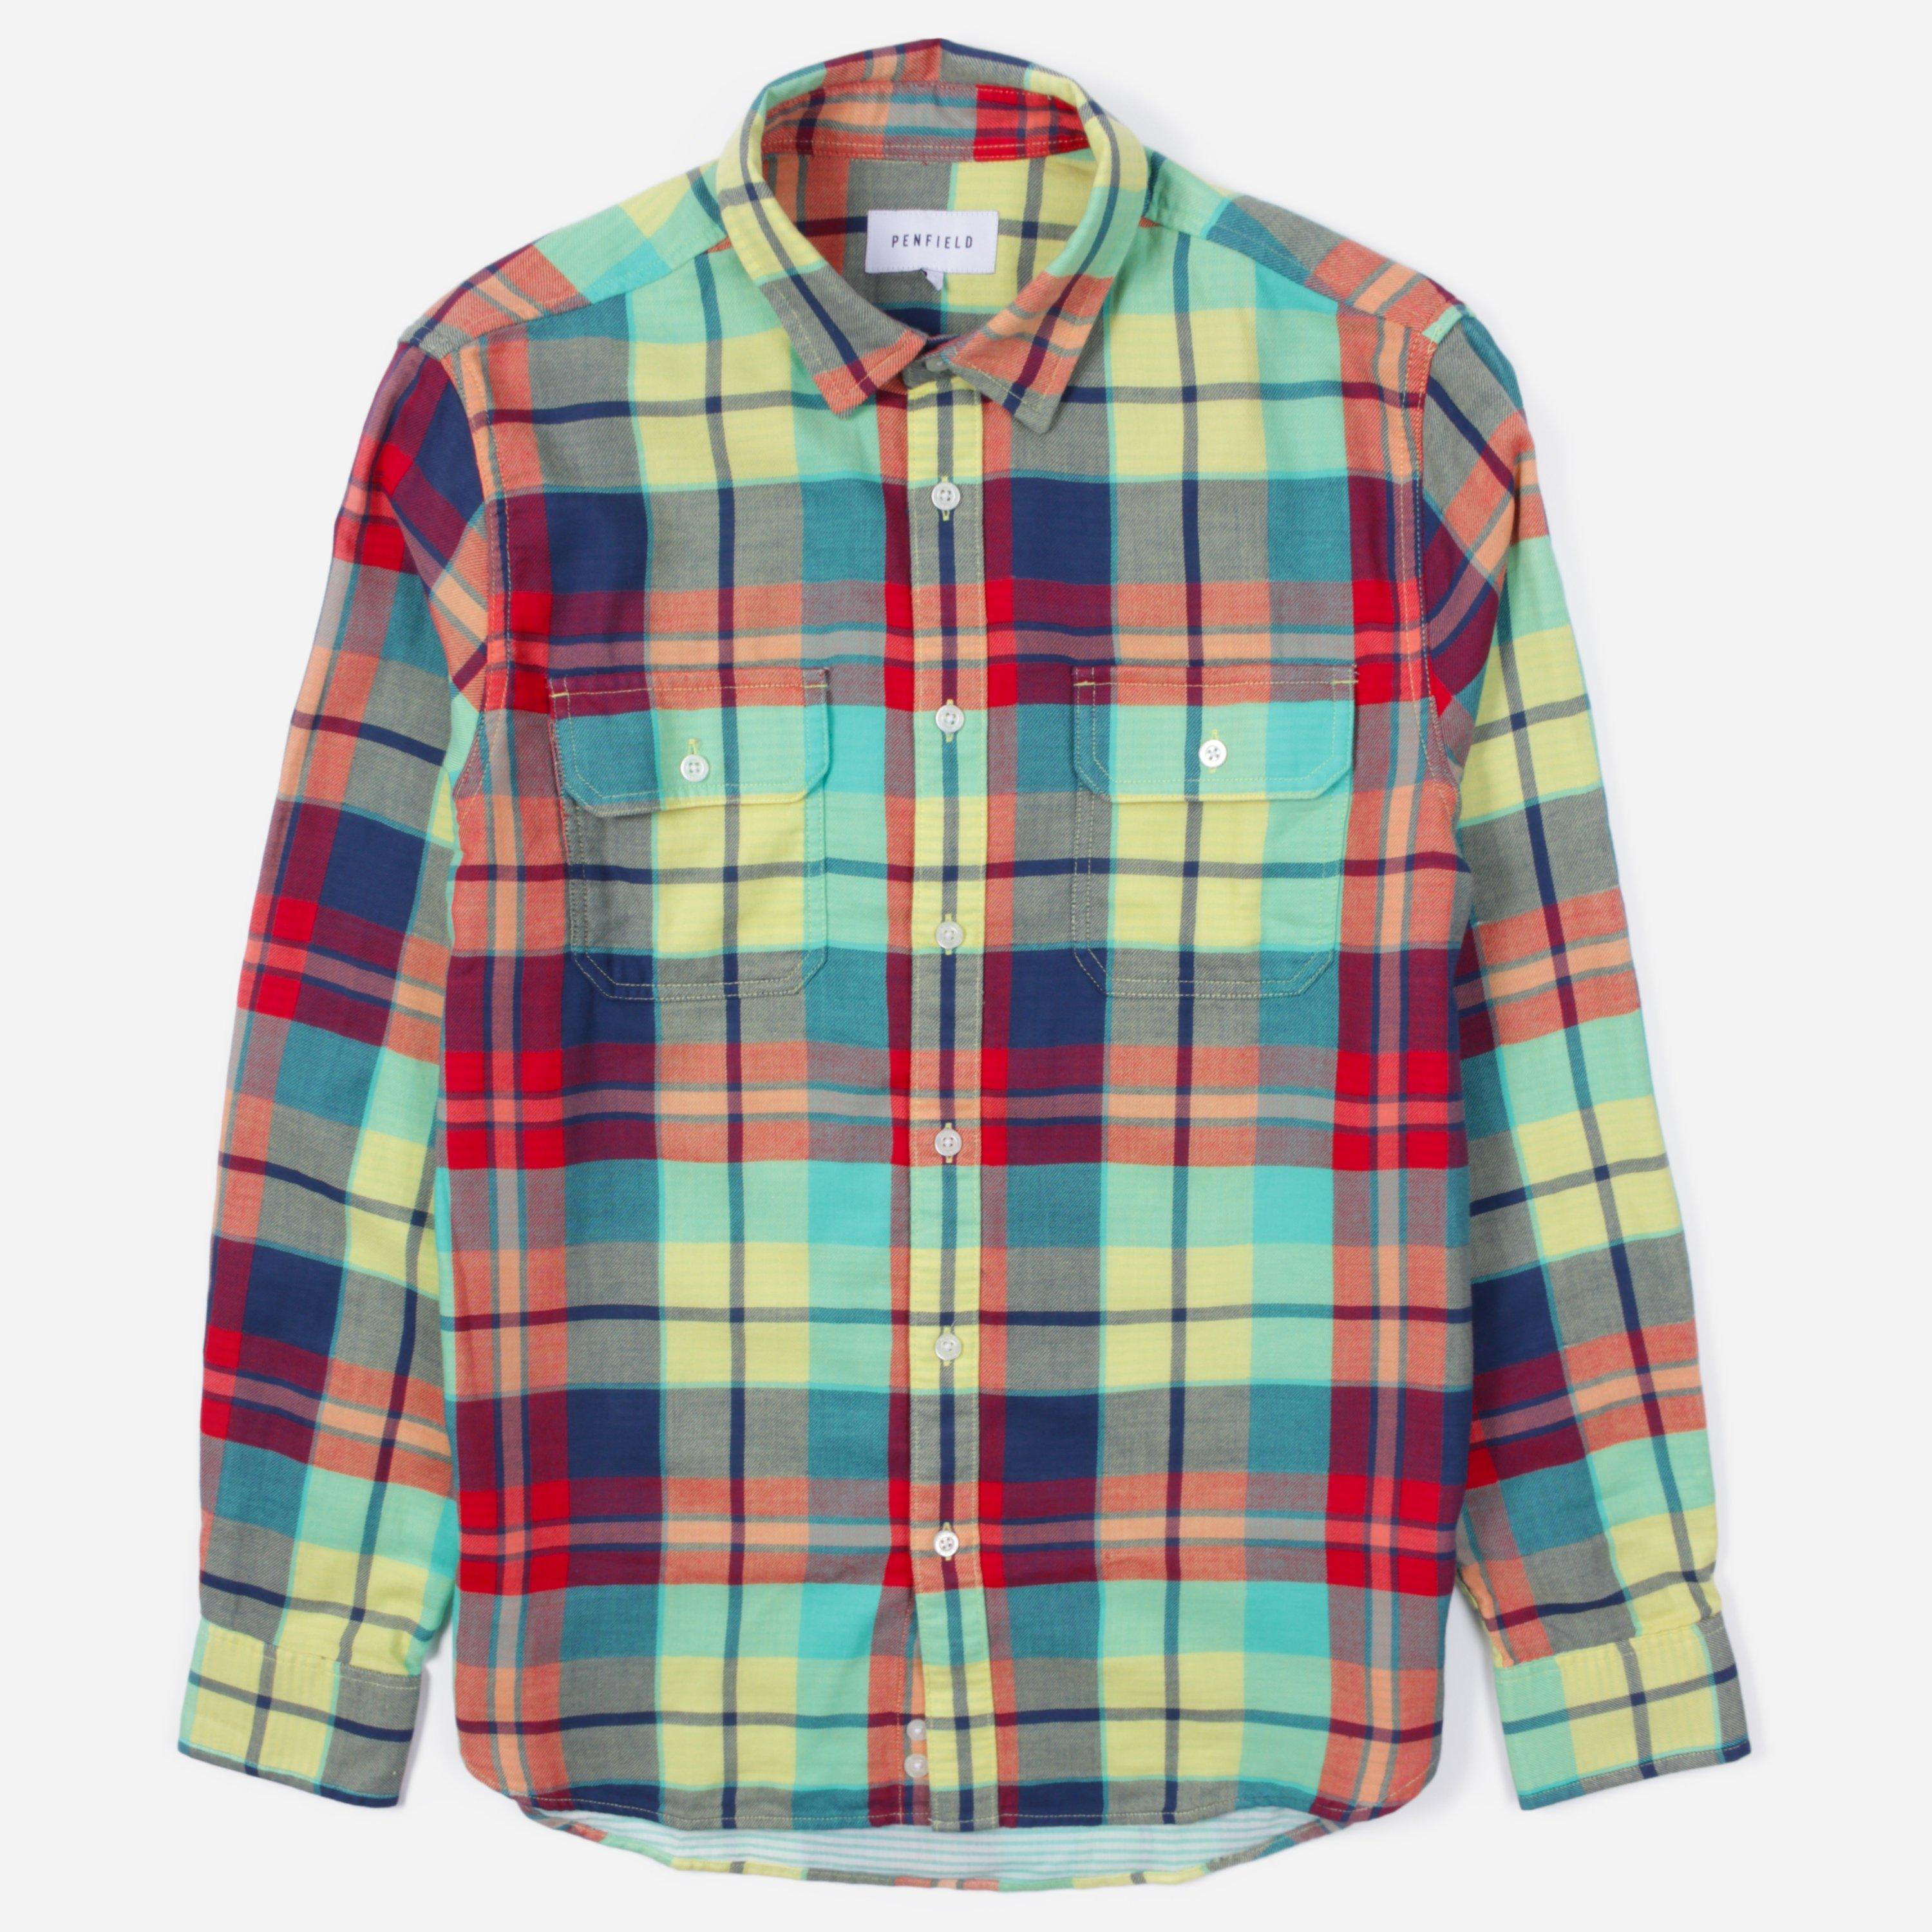 Penfield Eastham Shirt